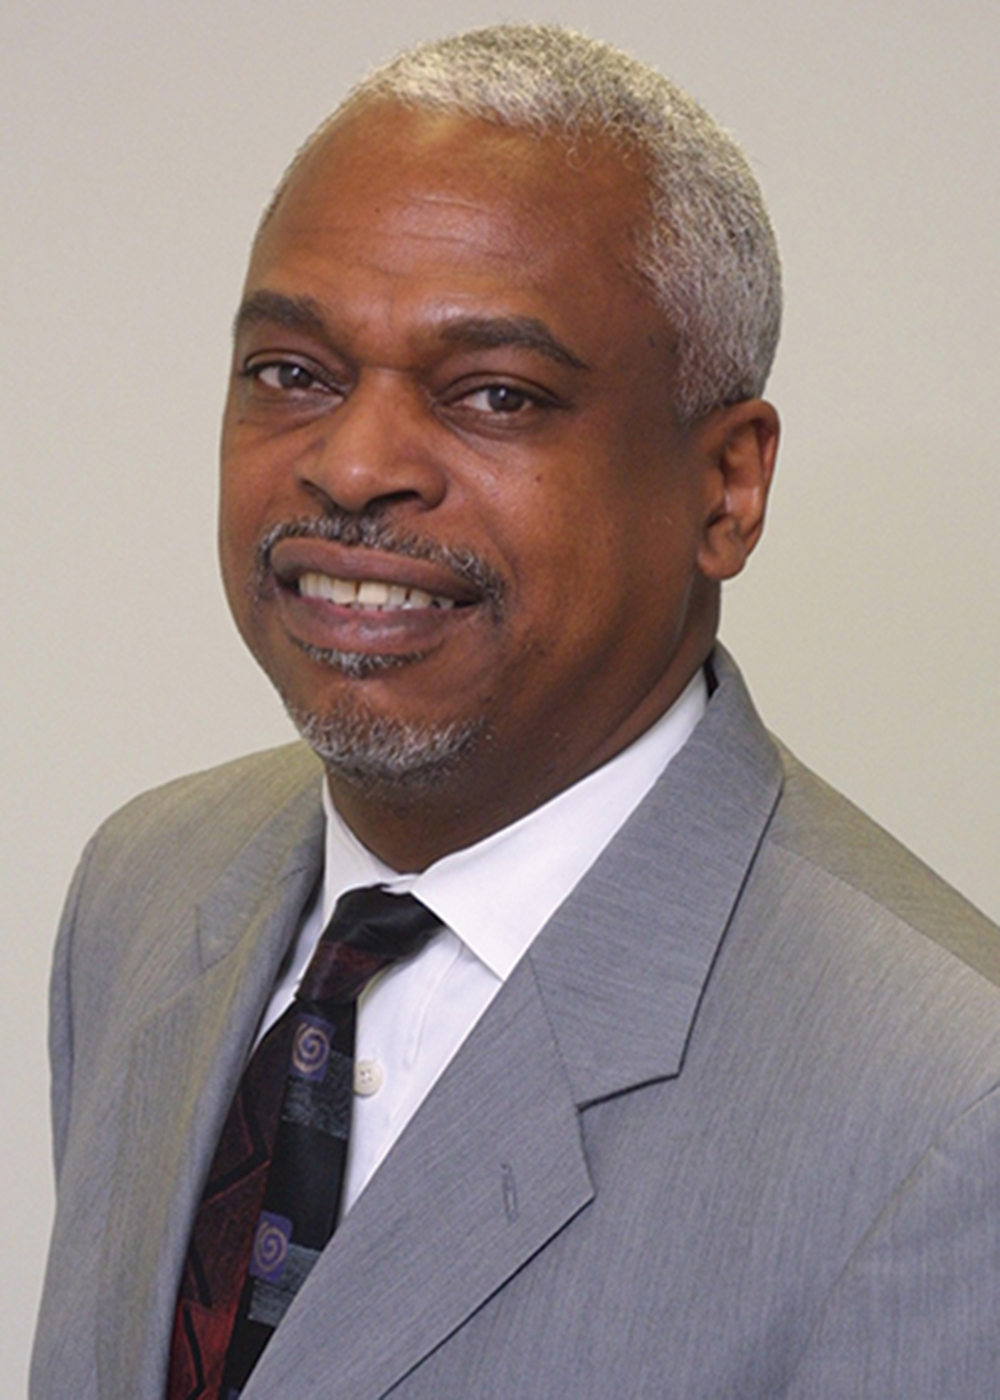 Wade Henderson is president and CEO of The Leadership Conference on Civil and Human Rights